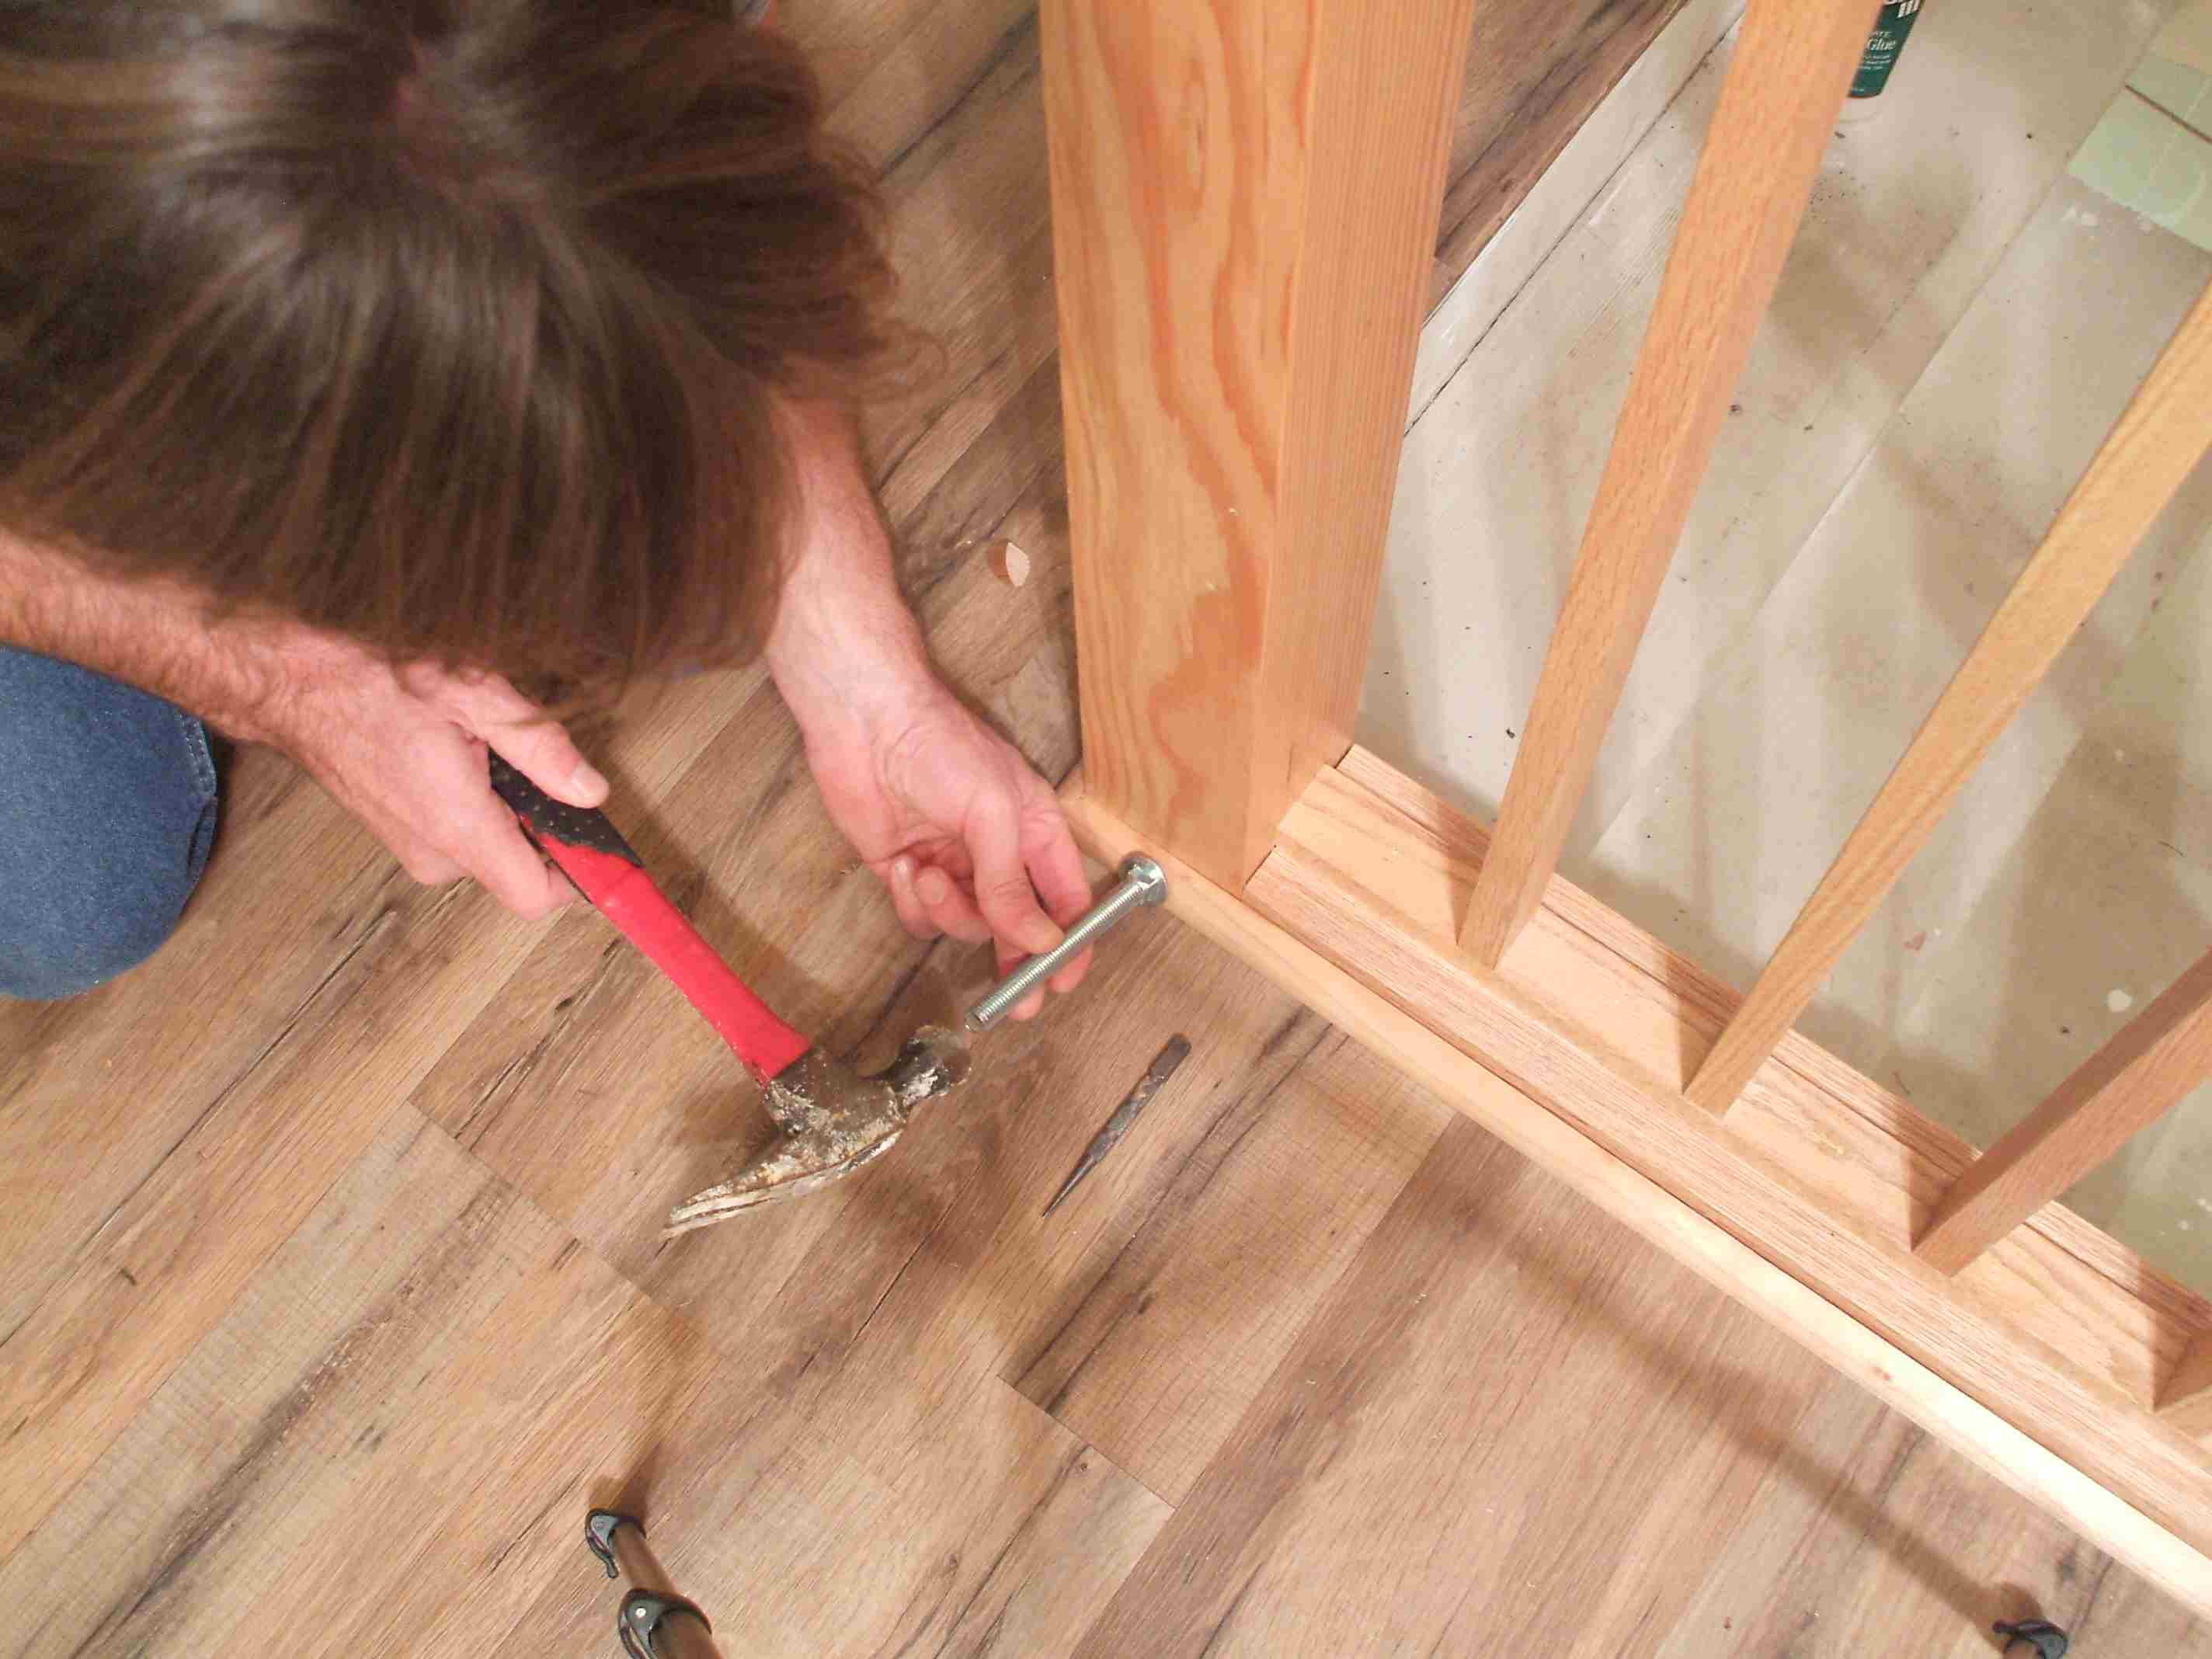 hardwood floor installation nails of how to install shoe molding or quarter round molding in setting protruding brad nails 56a49e595f9b58b7d0d7de0d jpg